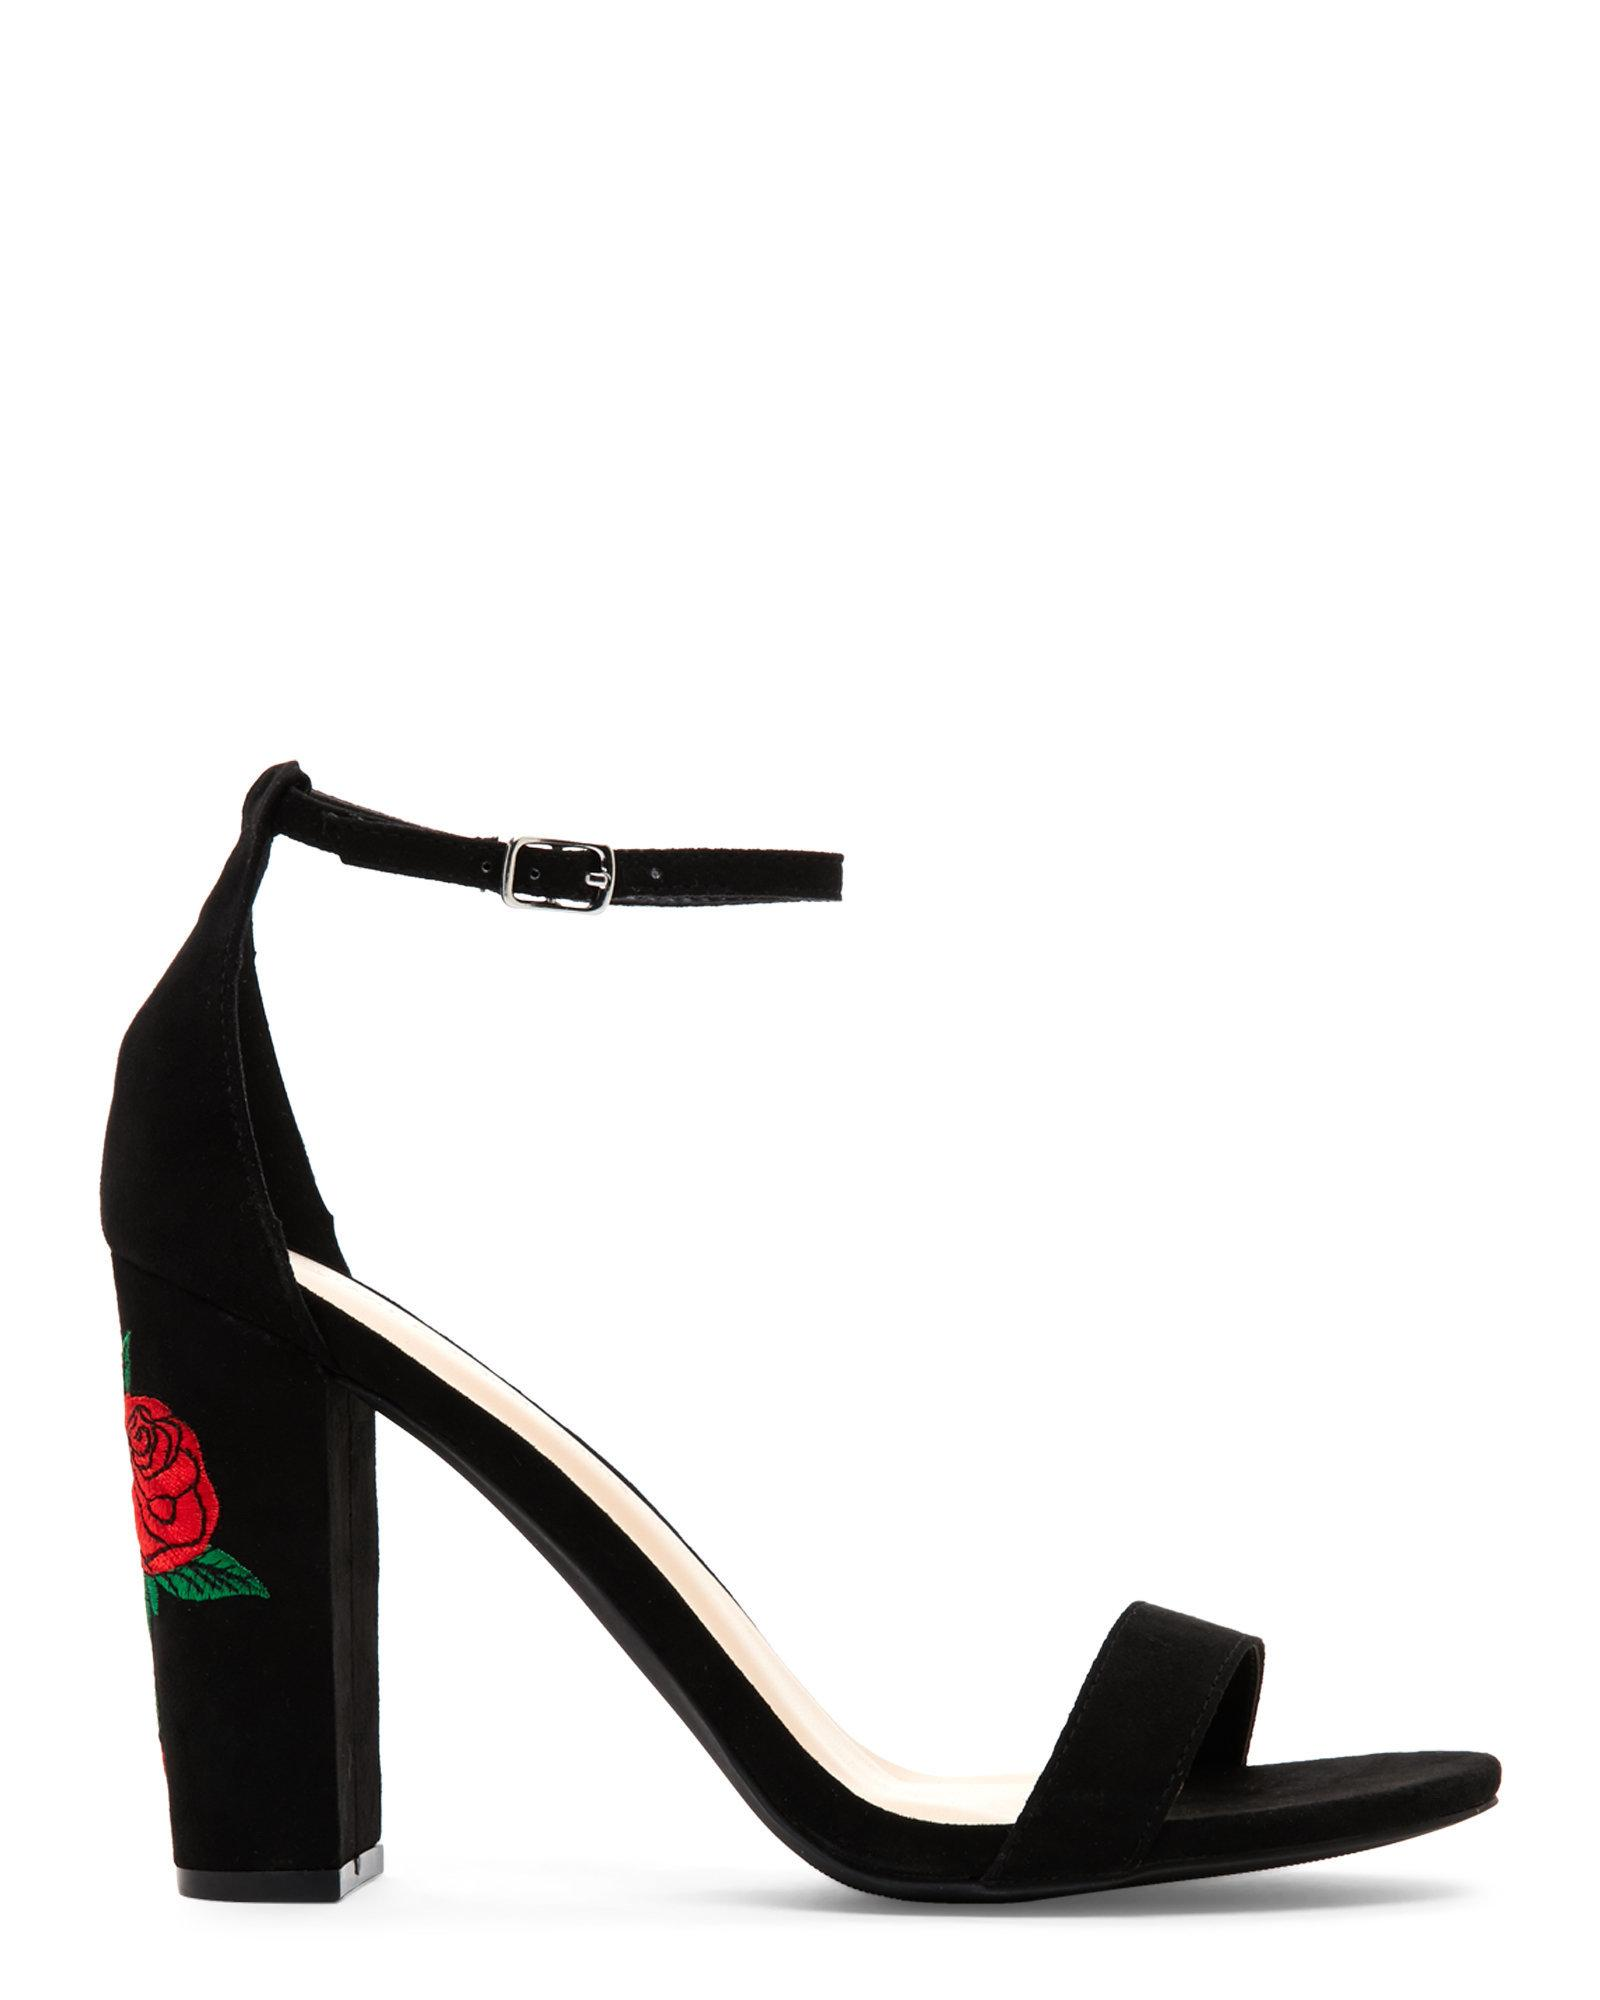 Black Suedette Floral Embroidered Heel Boots New Look